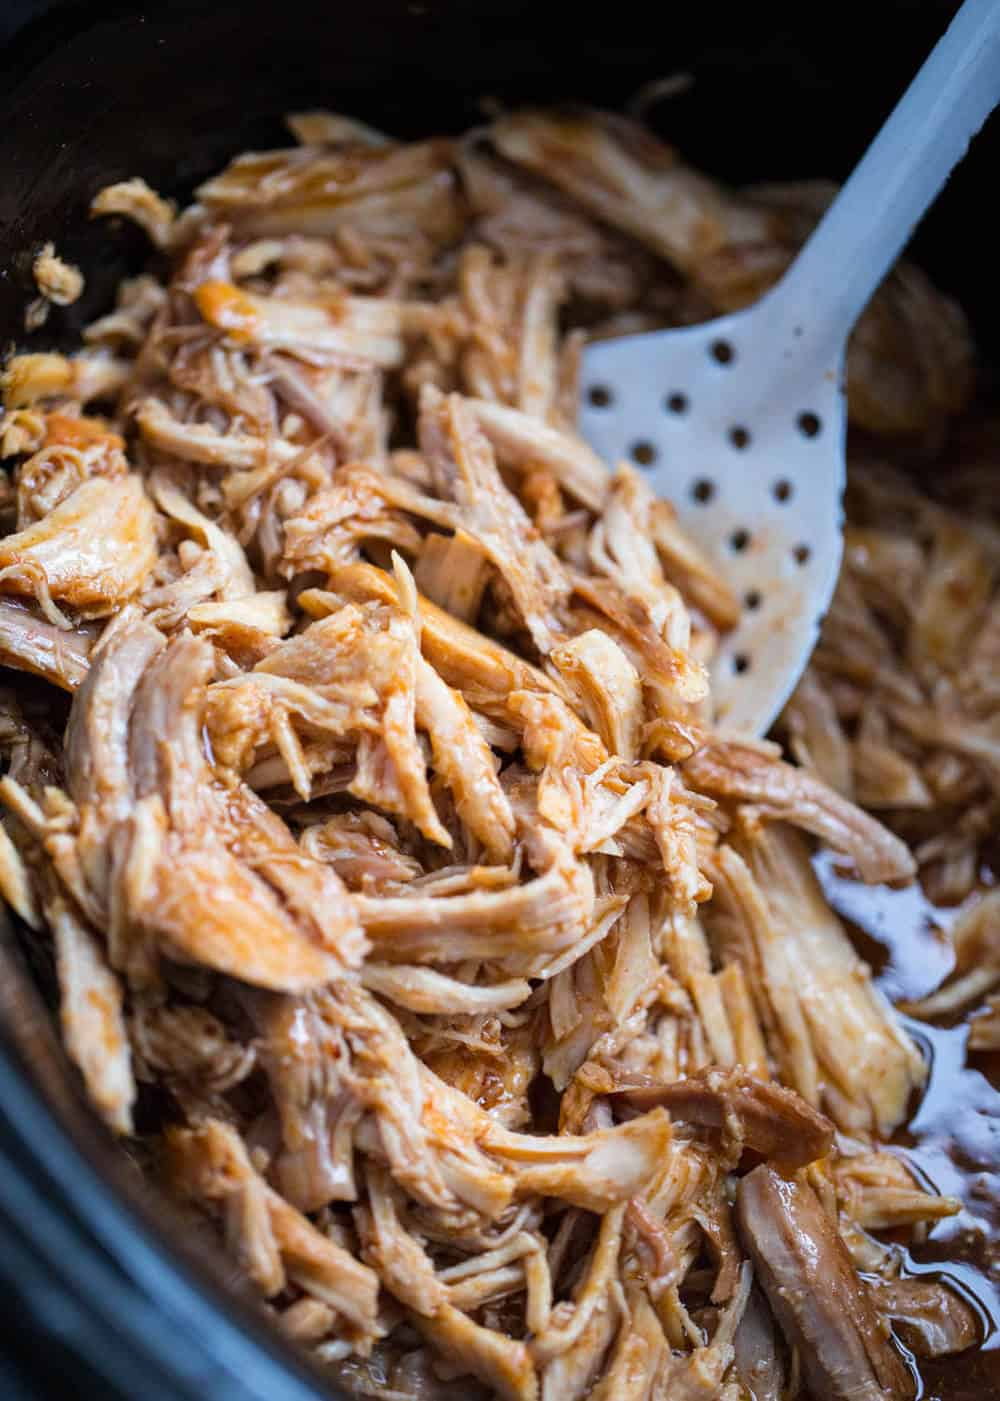 Slow Cooker Sweet Pork - made with 5 ingredients and only takes 5 minutes of prep work! Tastes great in tacos, burritos, salads and enchiladas! This recipe is SO super simple to make and full of flavor!